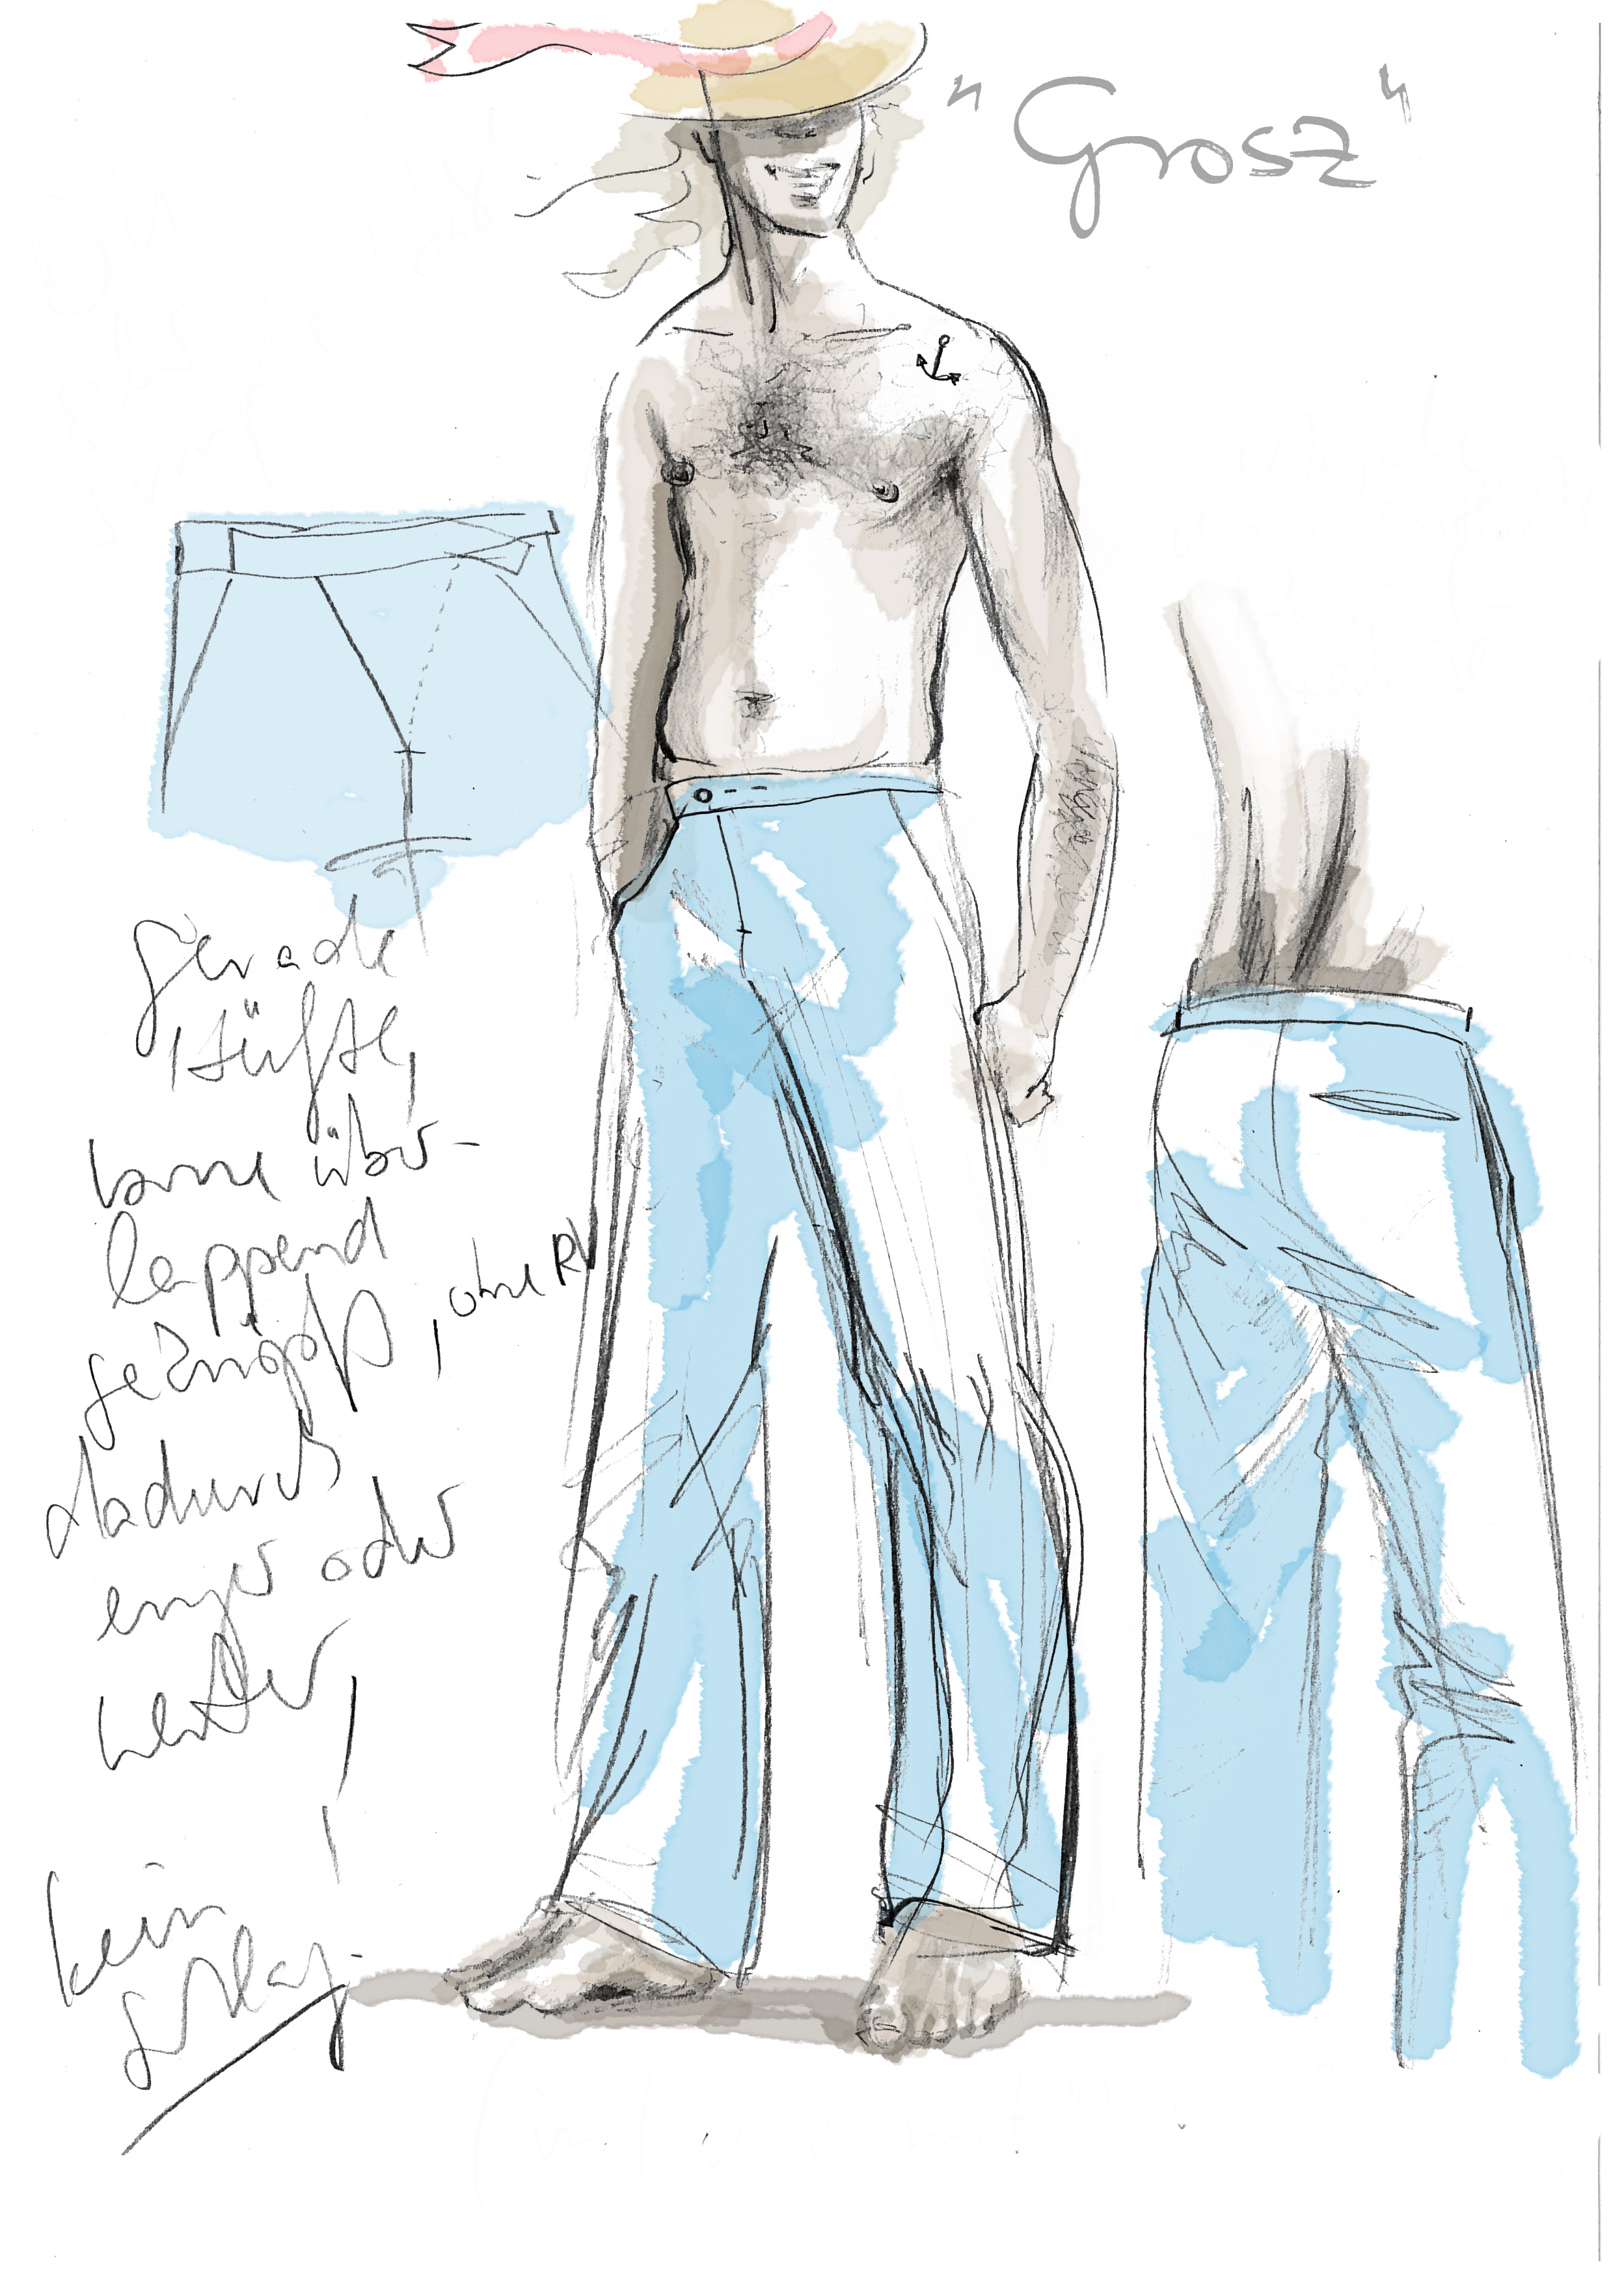 Sketch to pants GROSZ | pencil on paper, digitally colored, ©2010